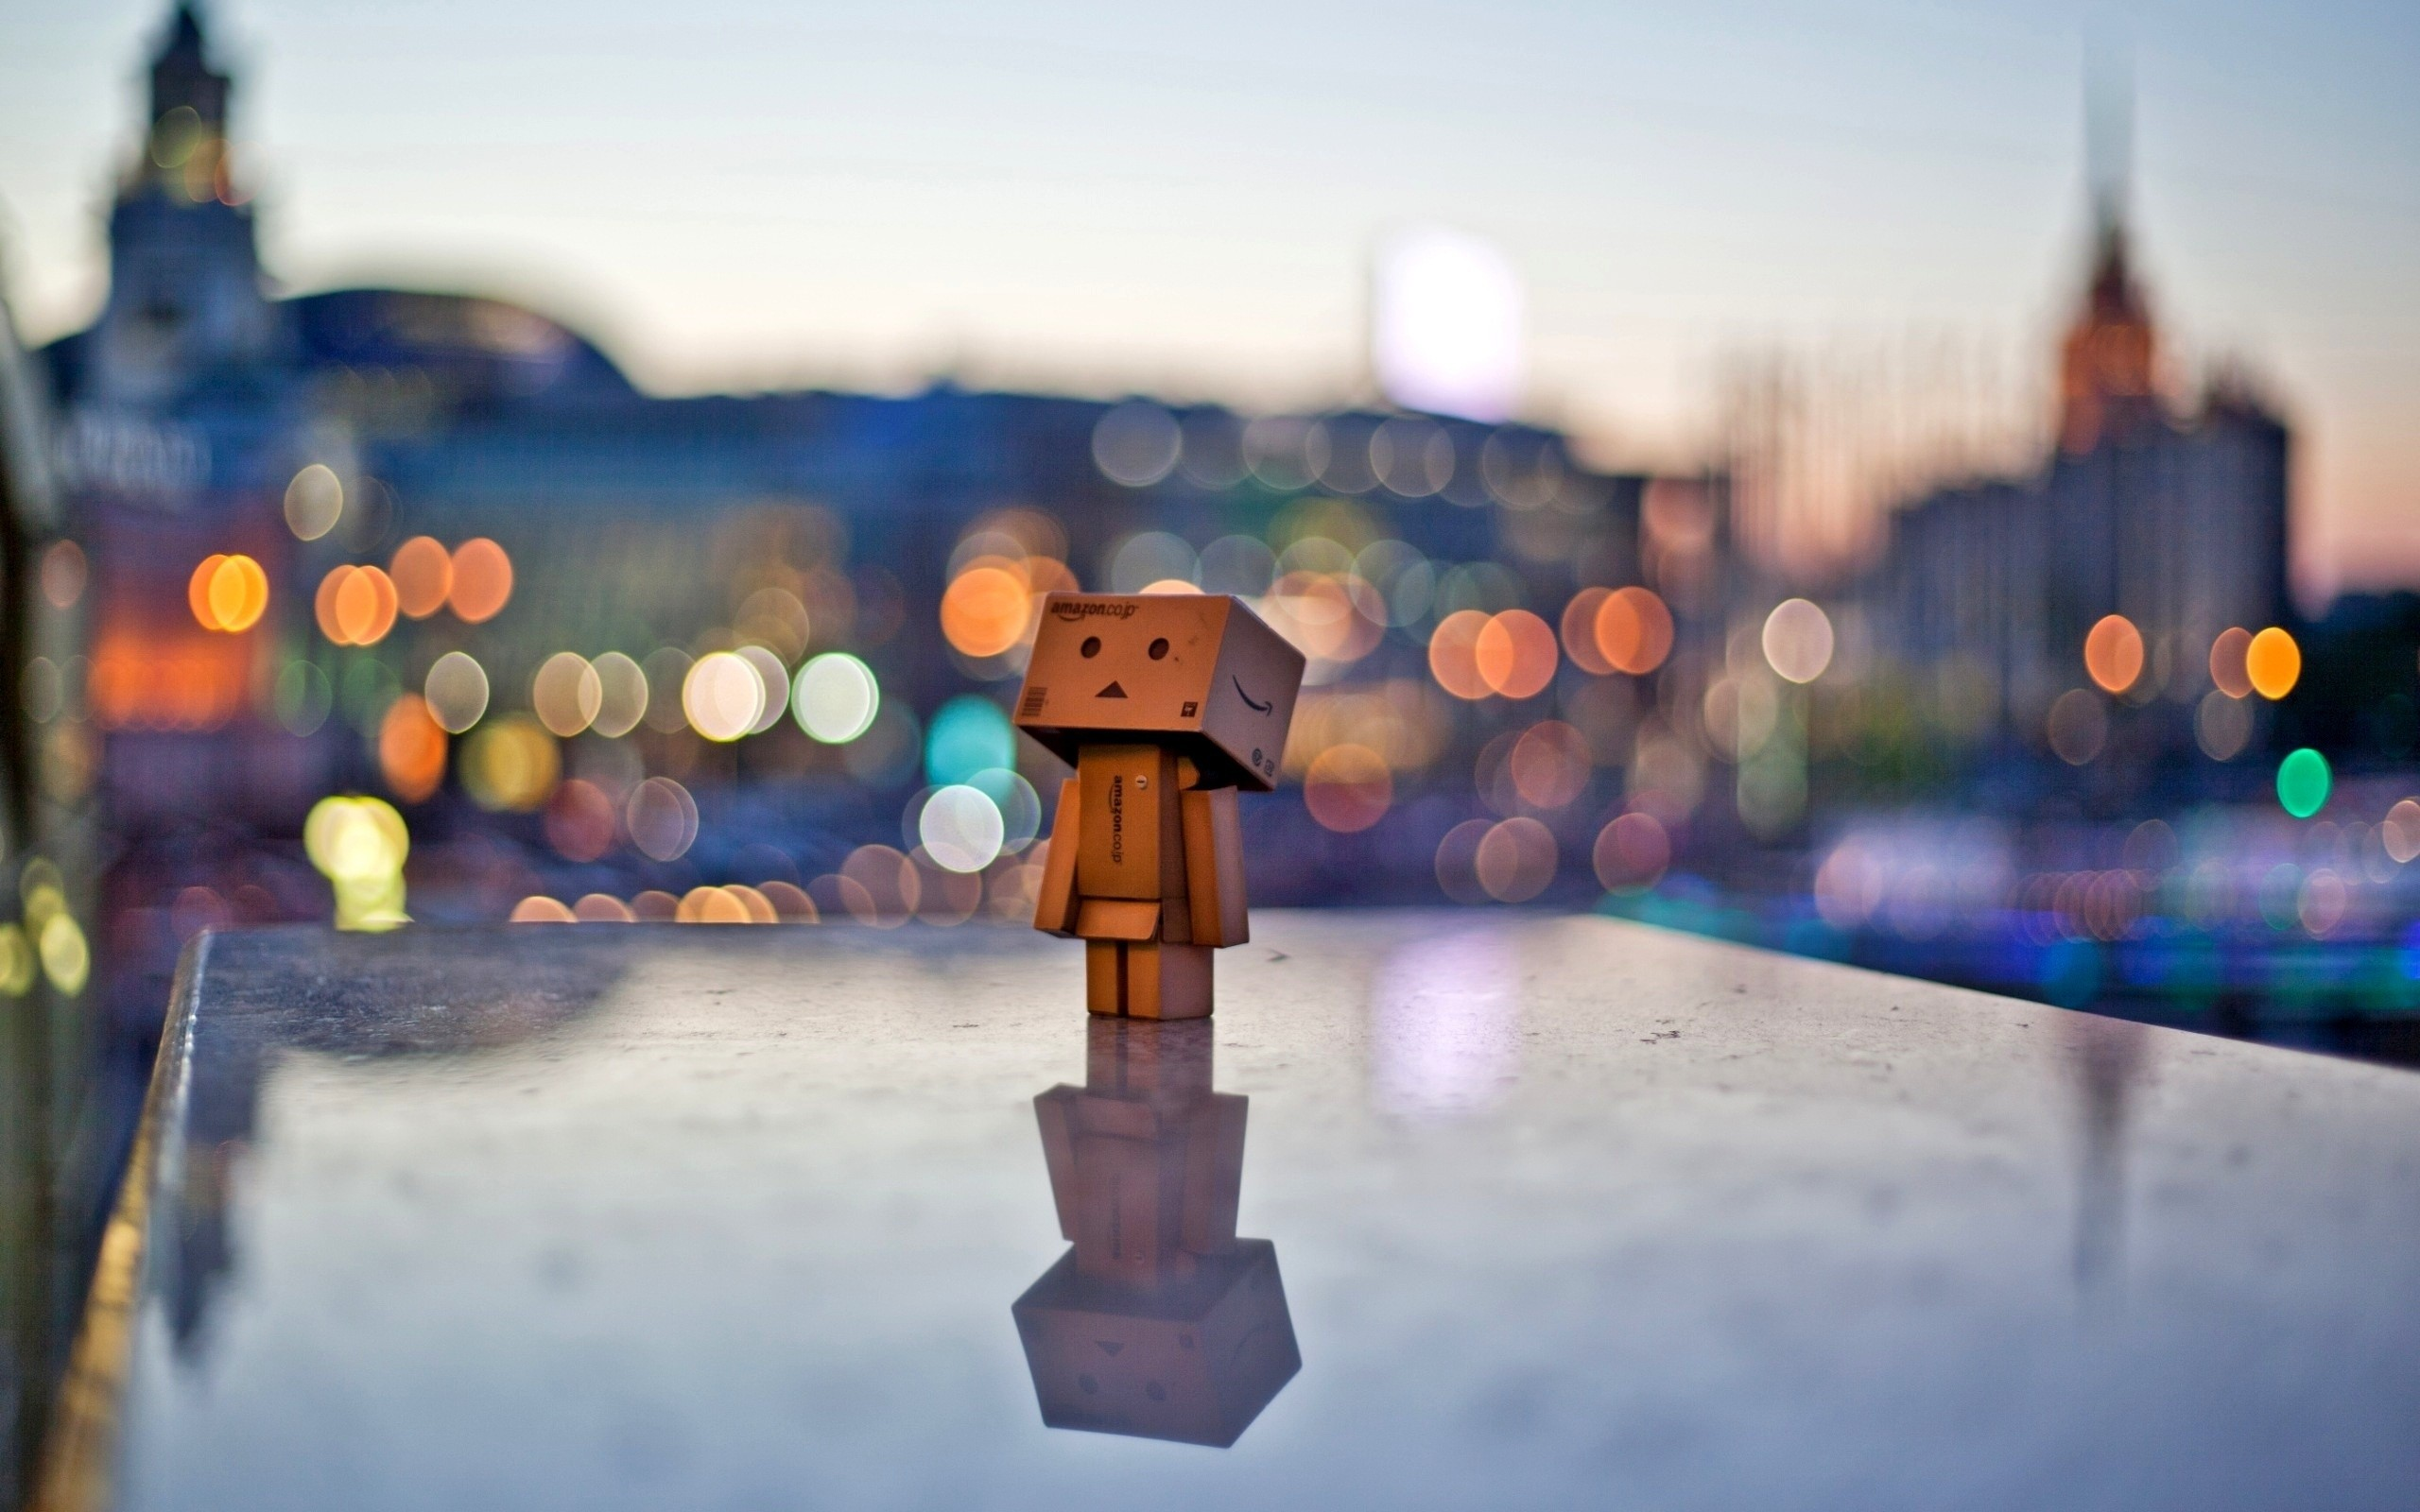 danbo the box man wallpaper 2560x1600 2573 wallpaperup